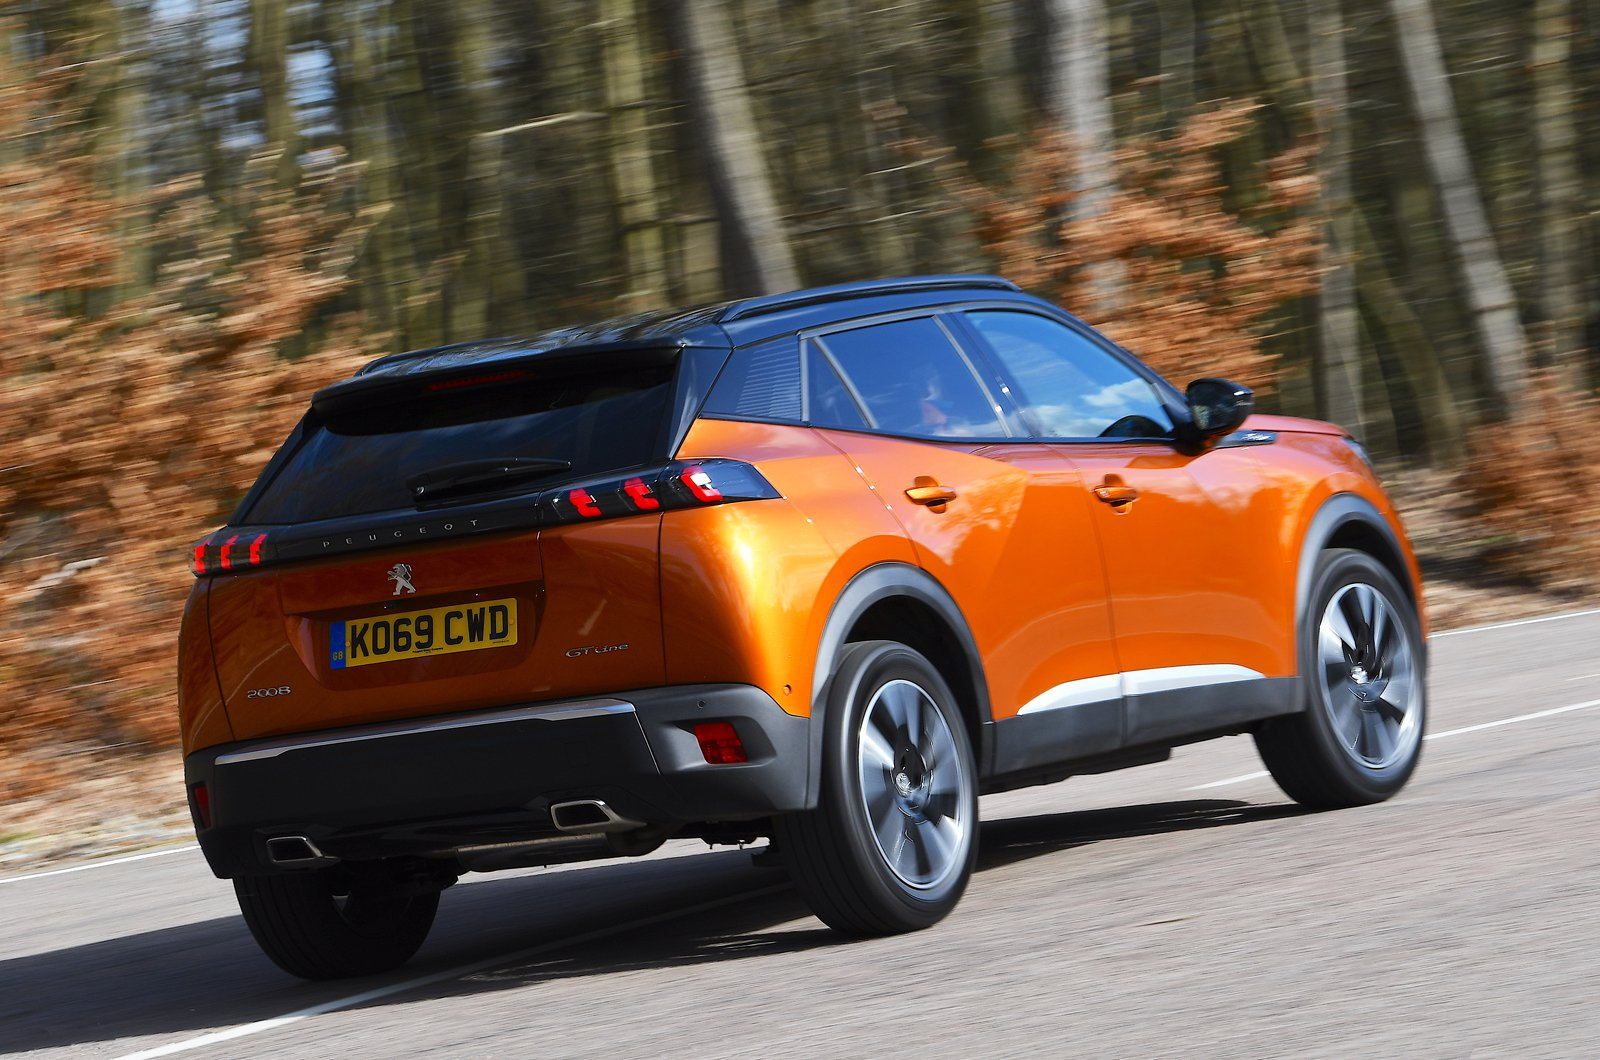 Peugeot 2008 rear panning - orange 69-plate car